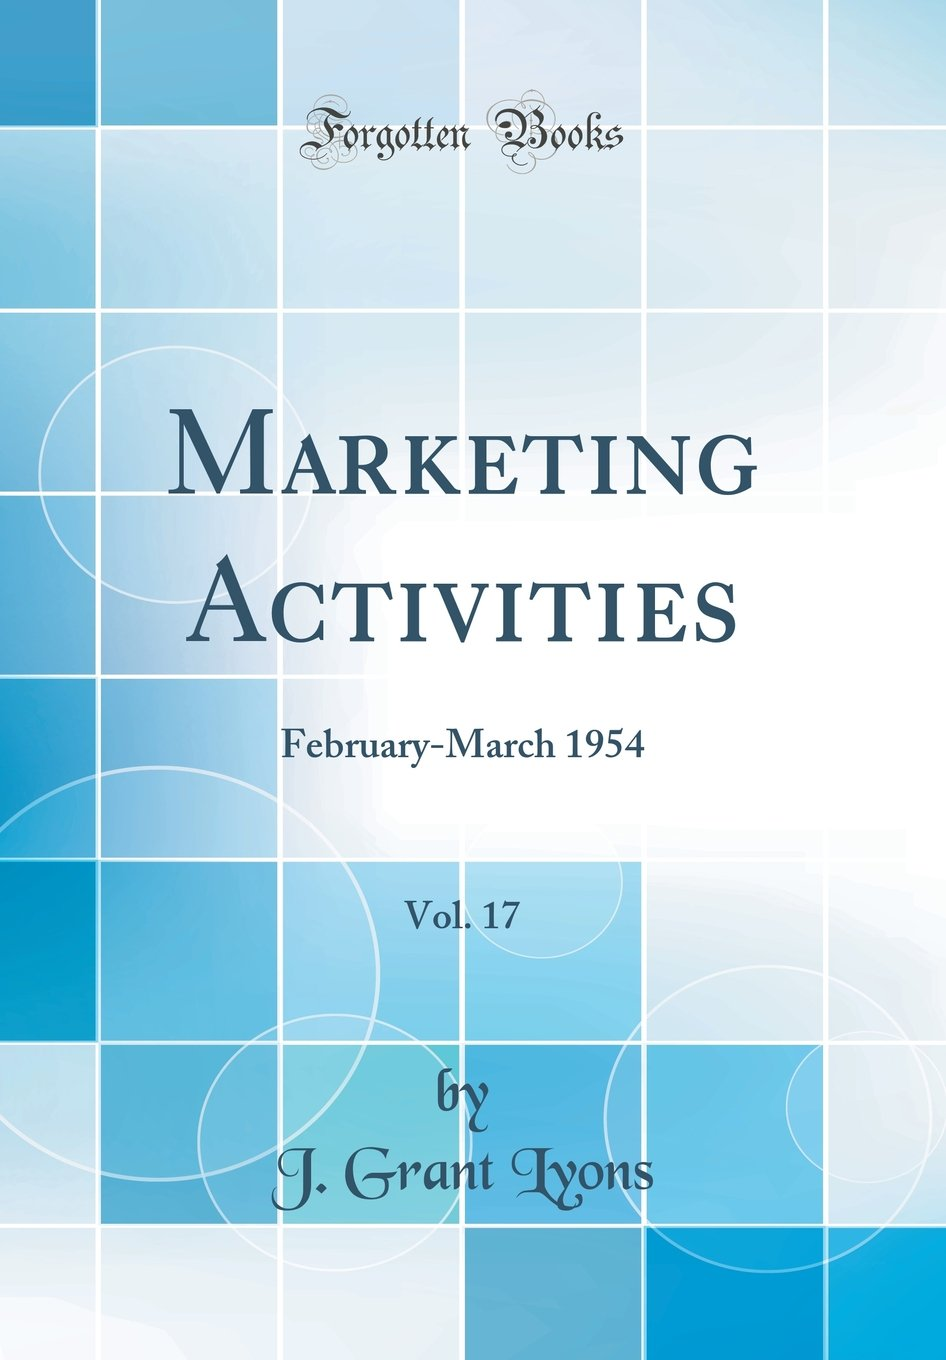 Marketing Activities, Vol. 17: February-March 1954 (Classic Reprint) PDF